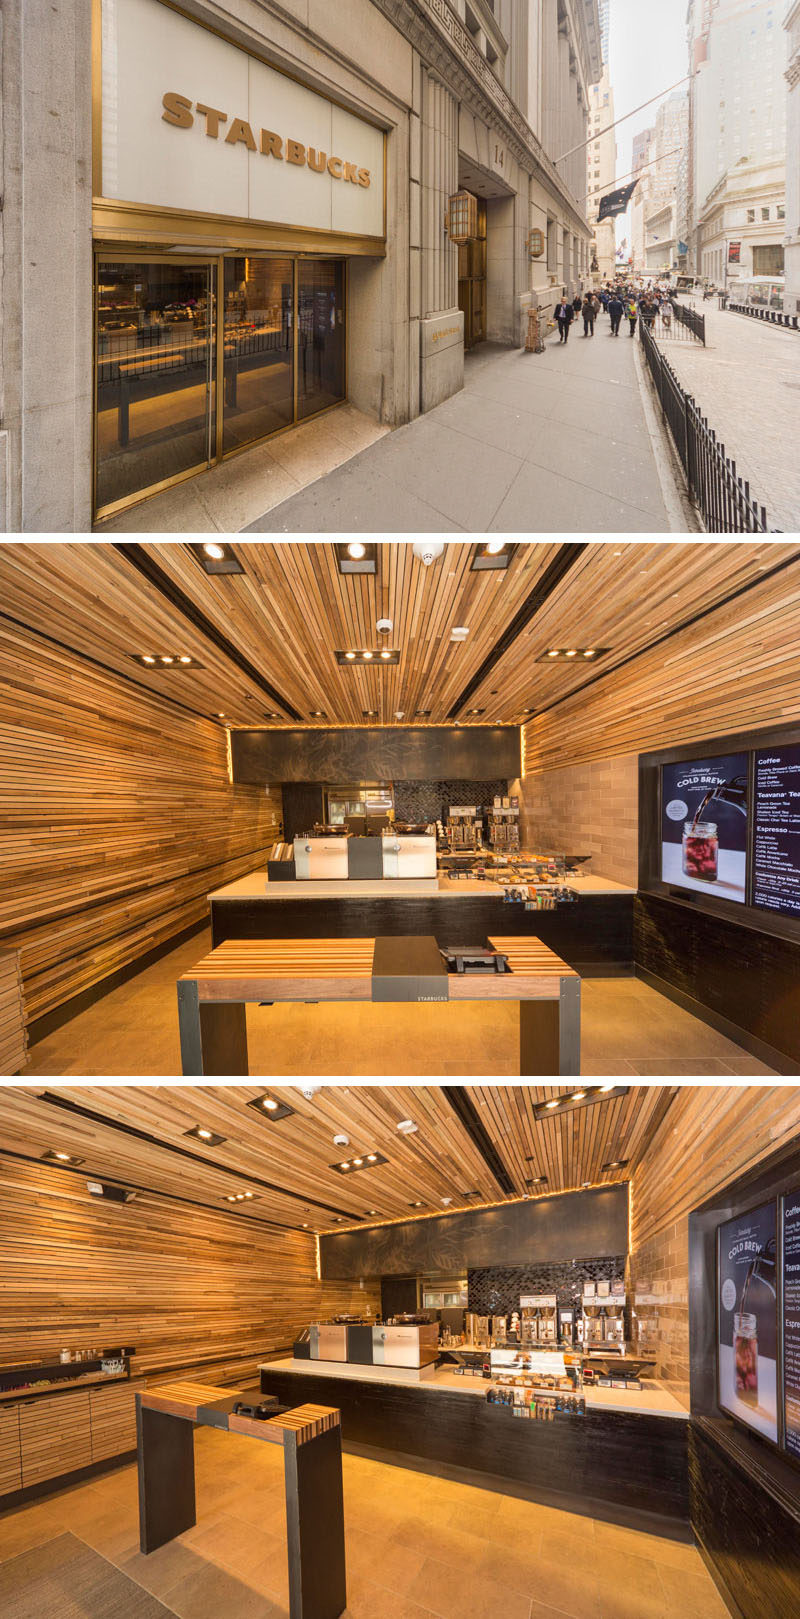 11 Starbucks Coffee Shops From Around The World // This compact Starbucks location on Wall Street in New York City, has streamlined their process to make getting your coffee and snacks that much faster while at the same time maintaining a sophisticated style suitable for it's Wall Street location.